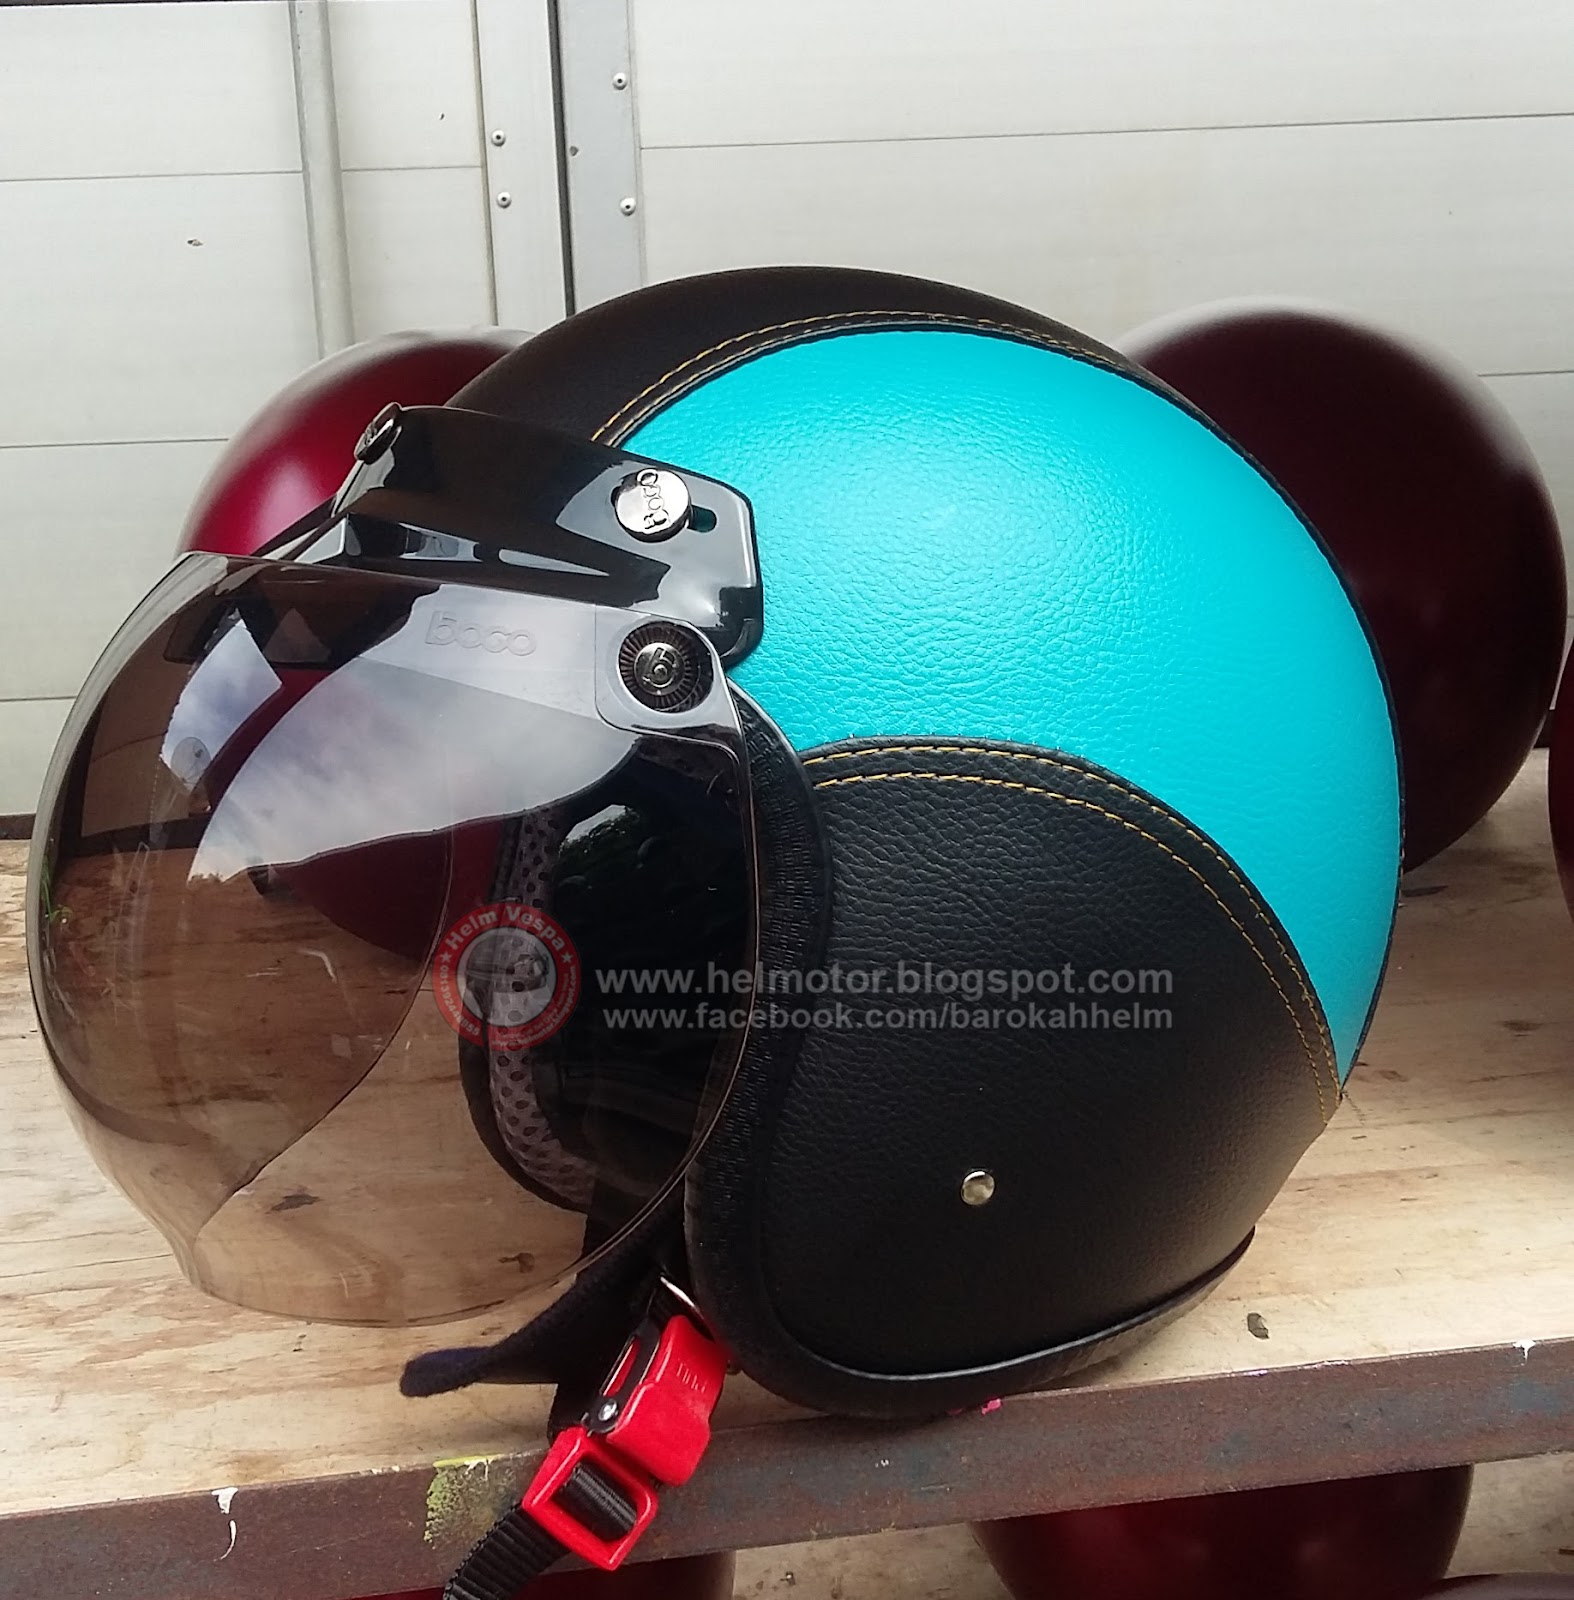 helm retro bogo biru muda hitam helm vespa. Black Bedroom Furniture Sets. Home Design Ideas